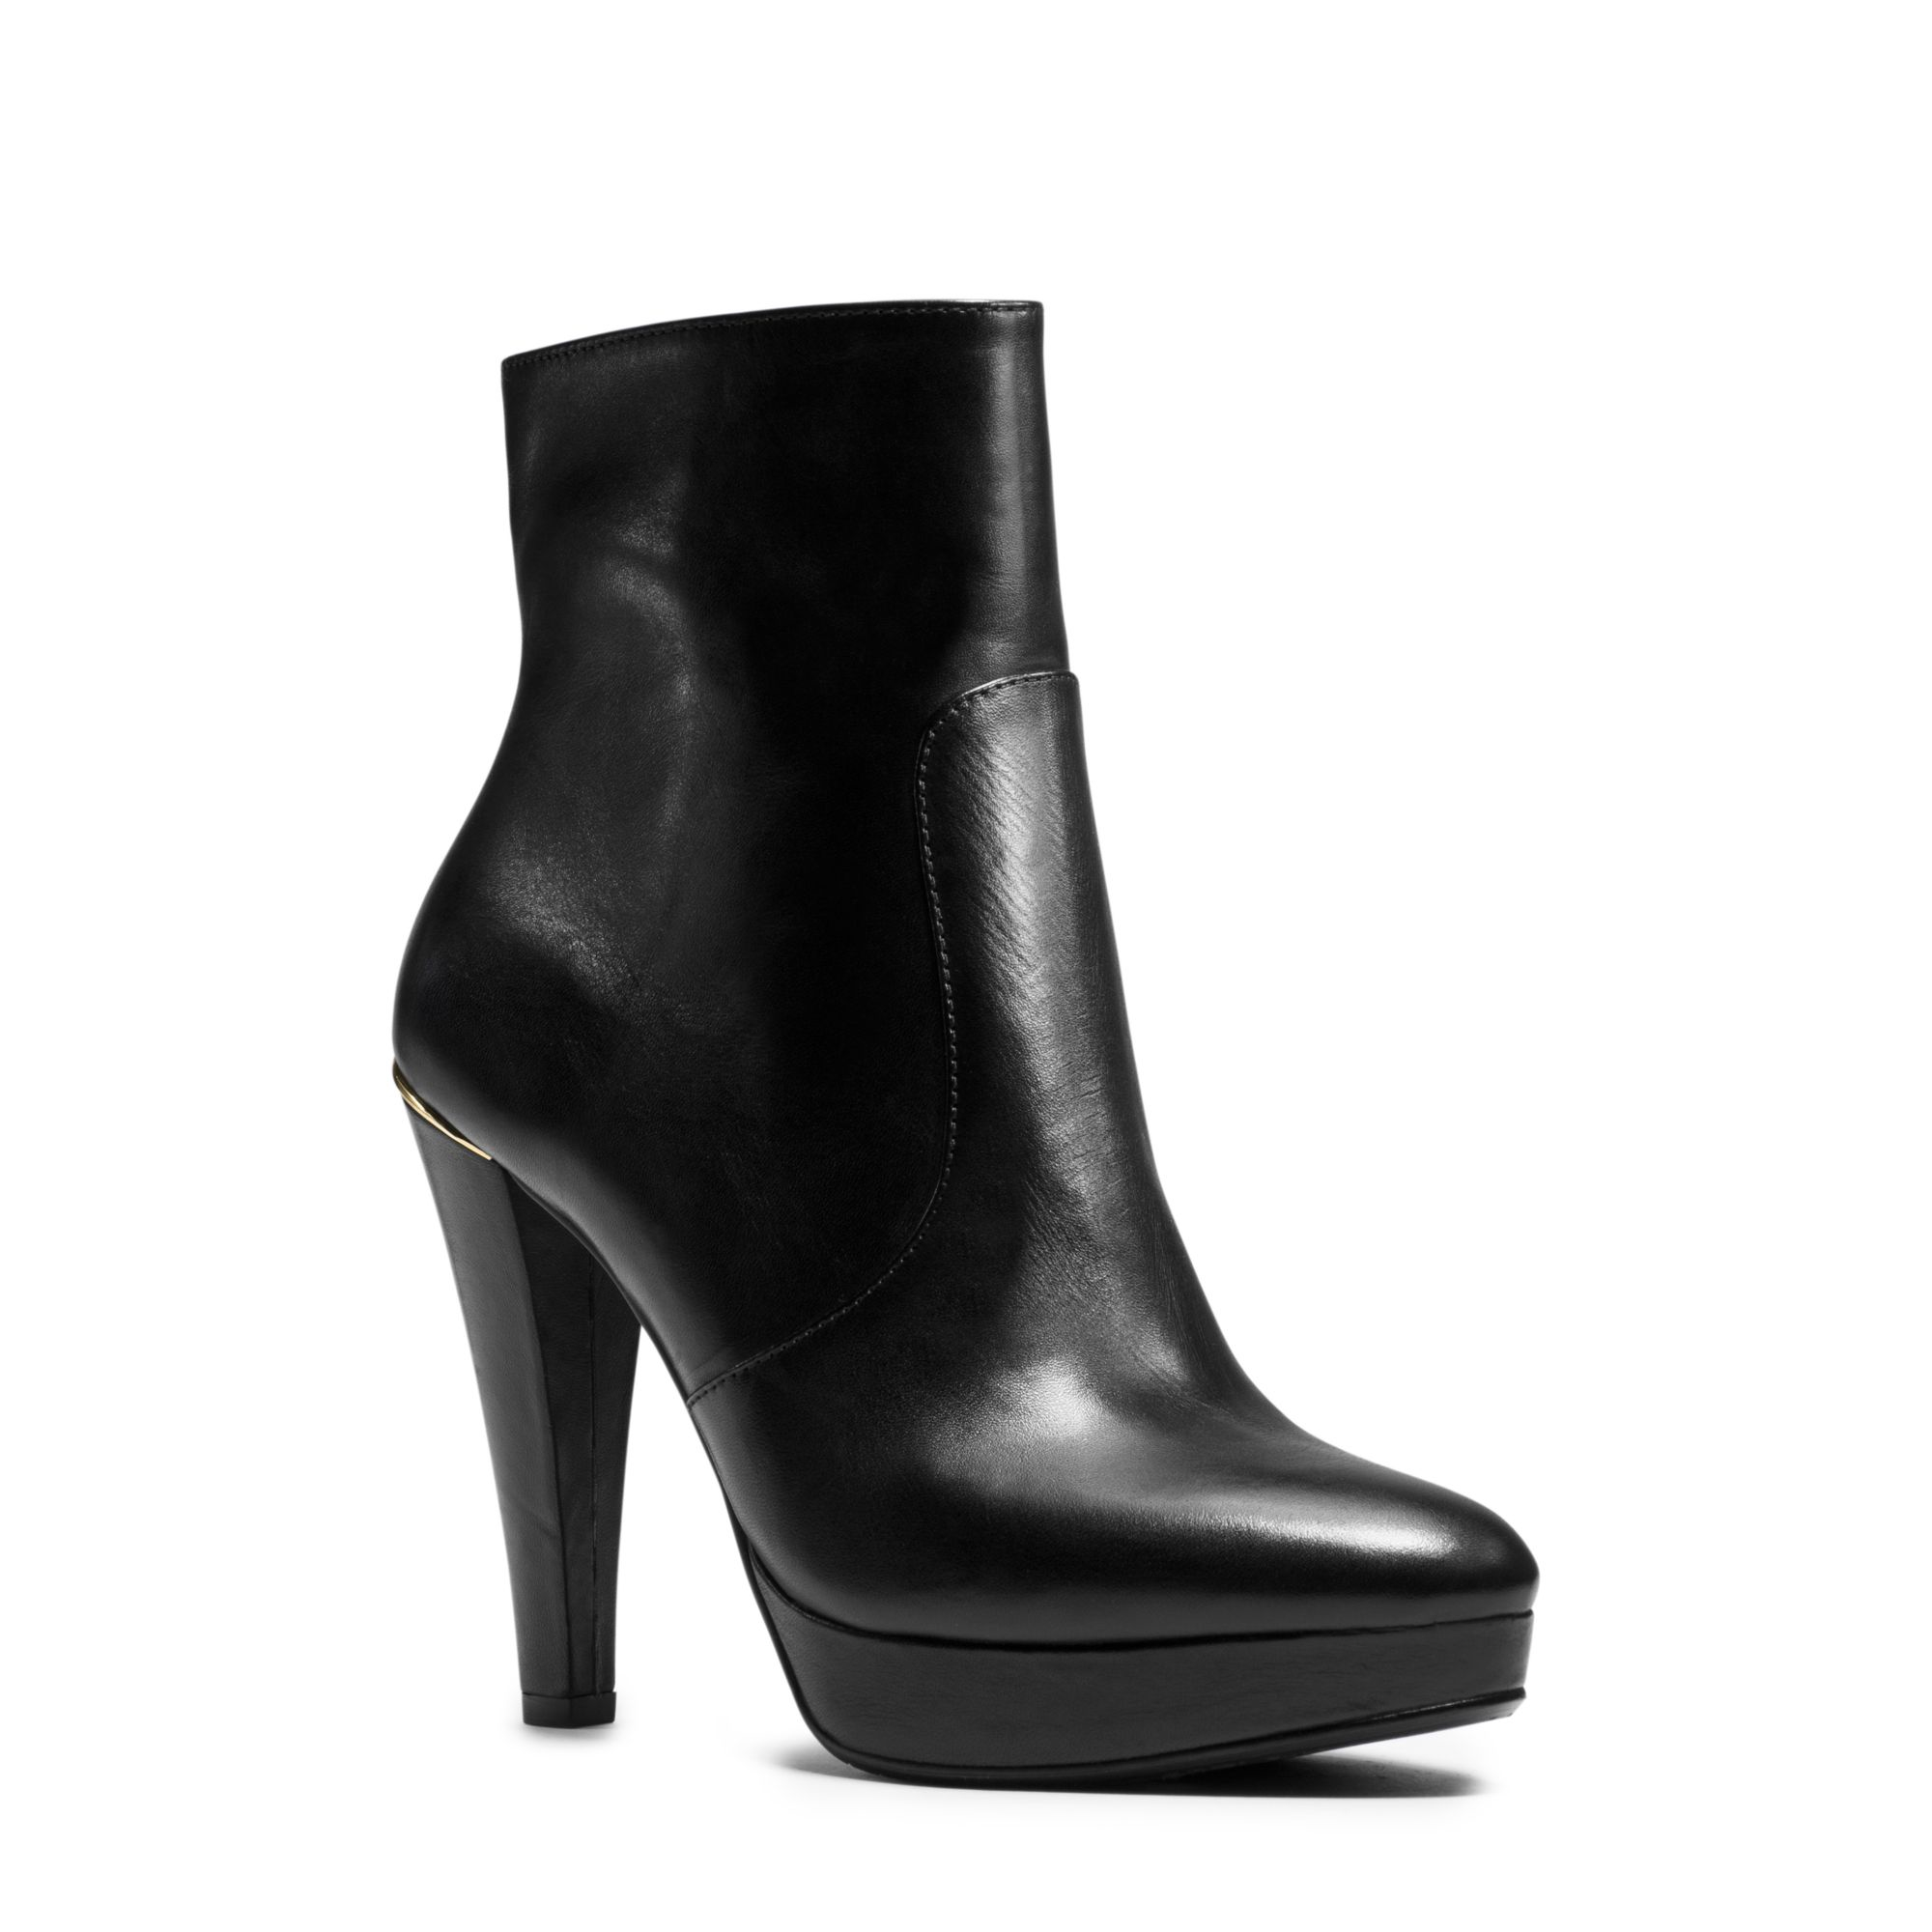 0504c28124e Lyst - Michael Kors Georgia Leather Platform Ankle Boot in Black